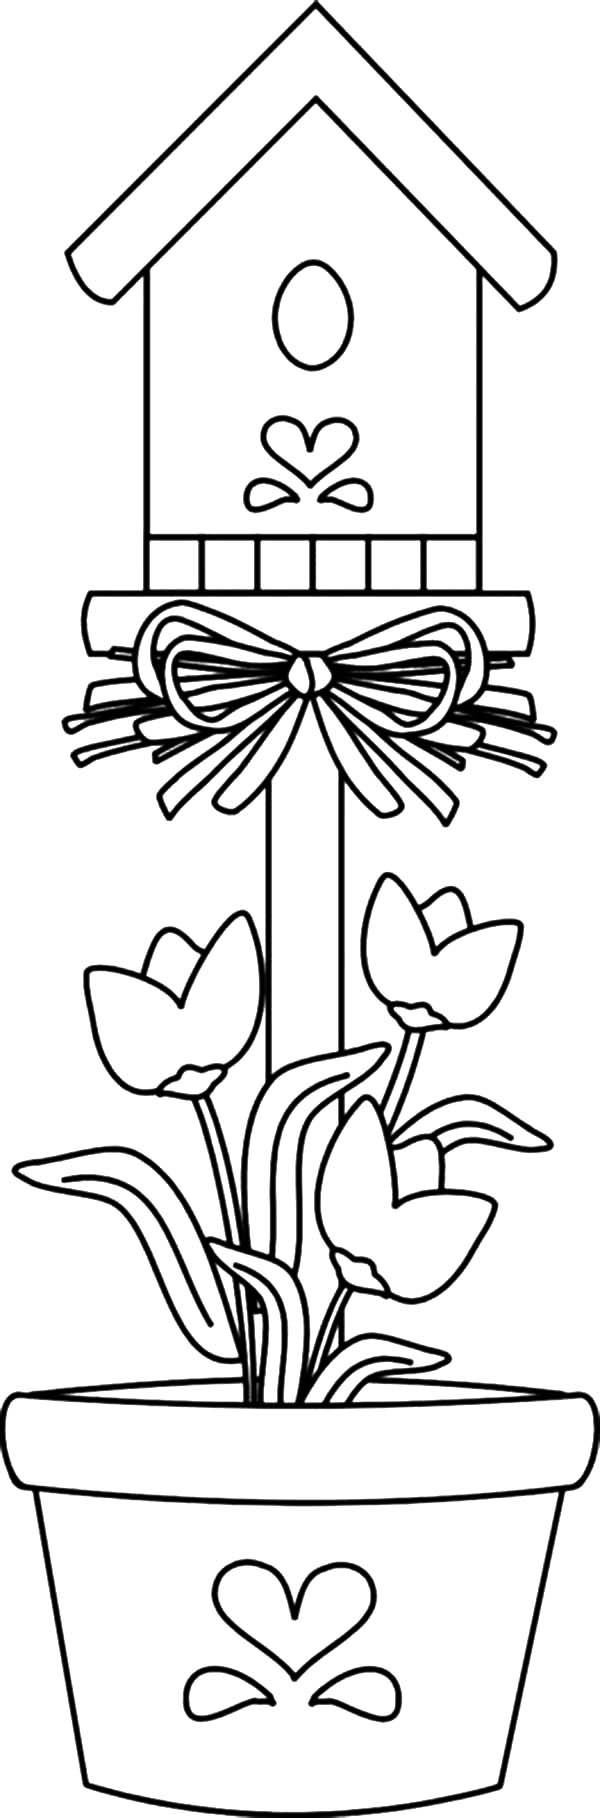 Bird House, : Bird House Planted in Pot Coloring Pages